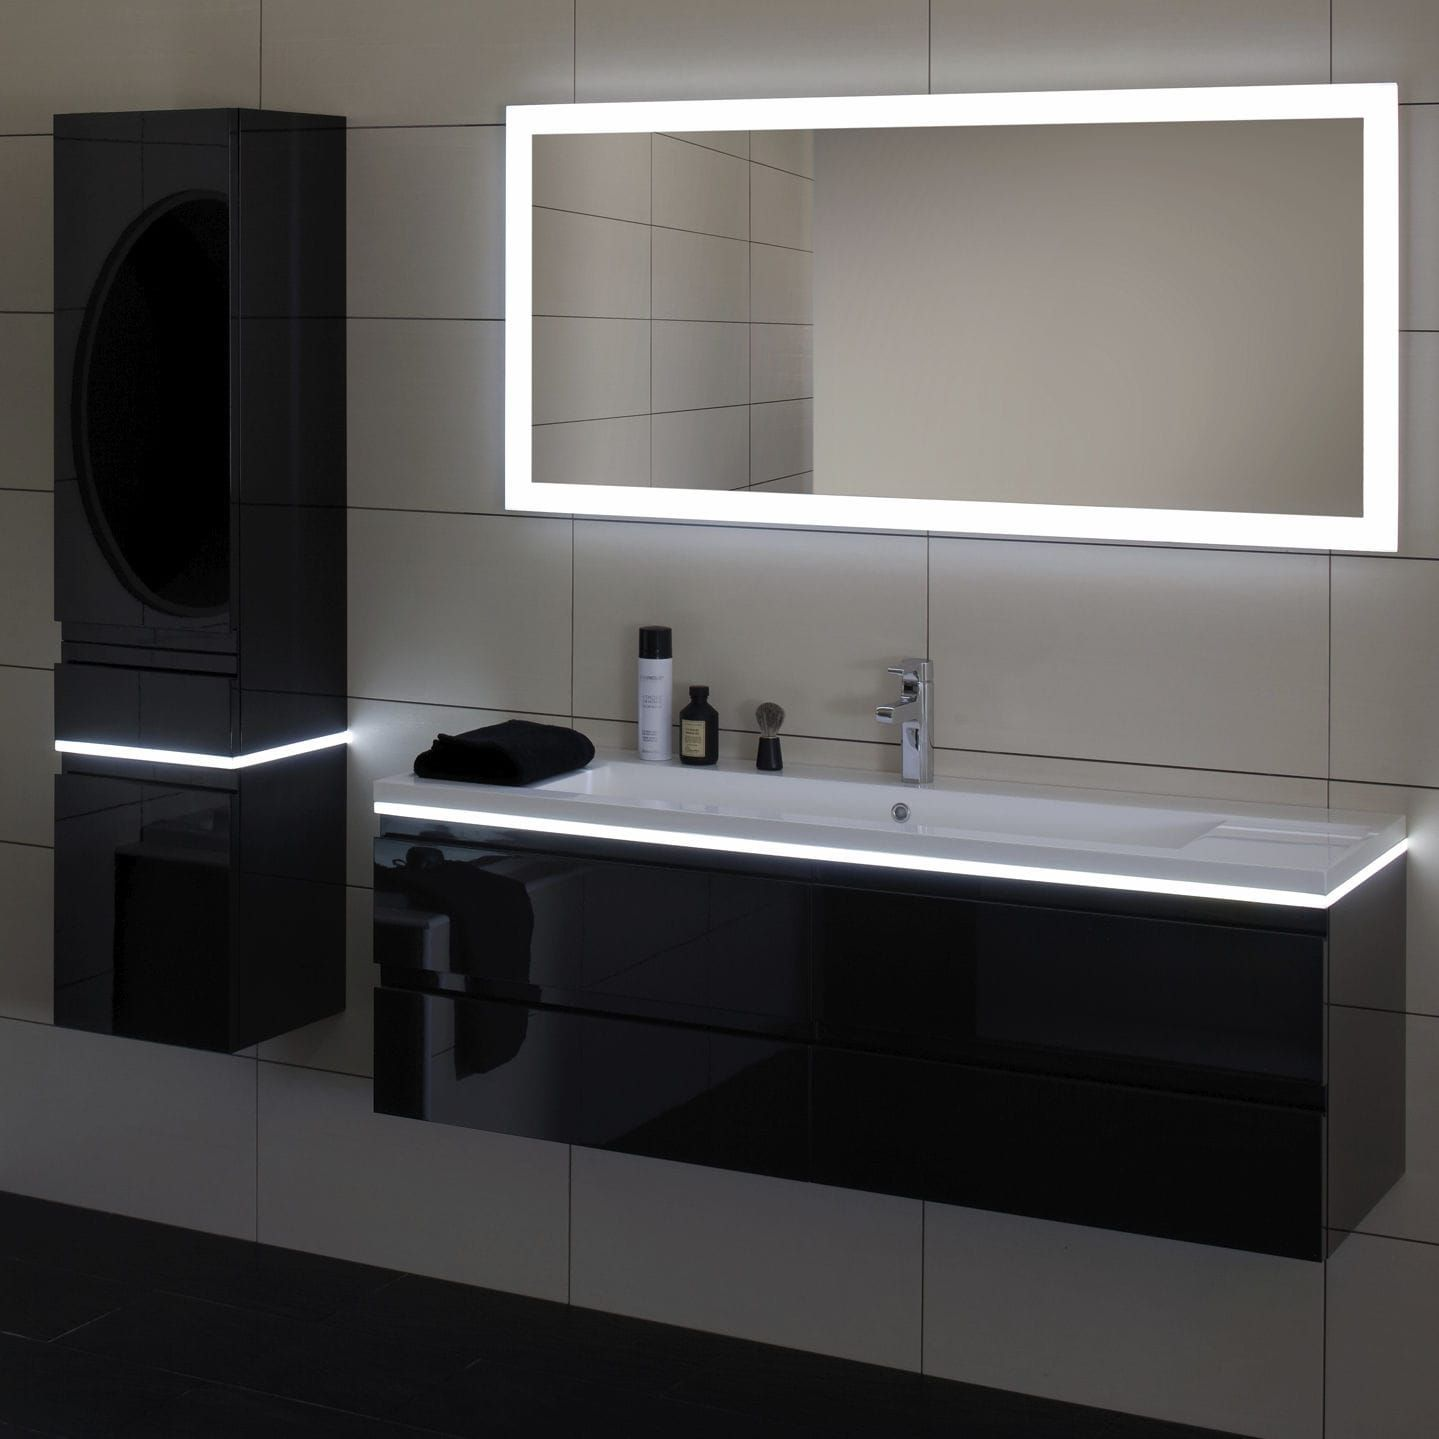 Miroir mural contemporain rectangulaire lumineux LED HALO